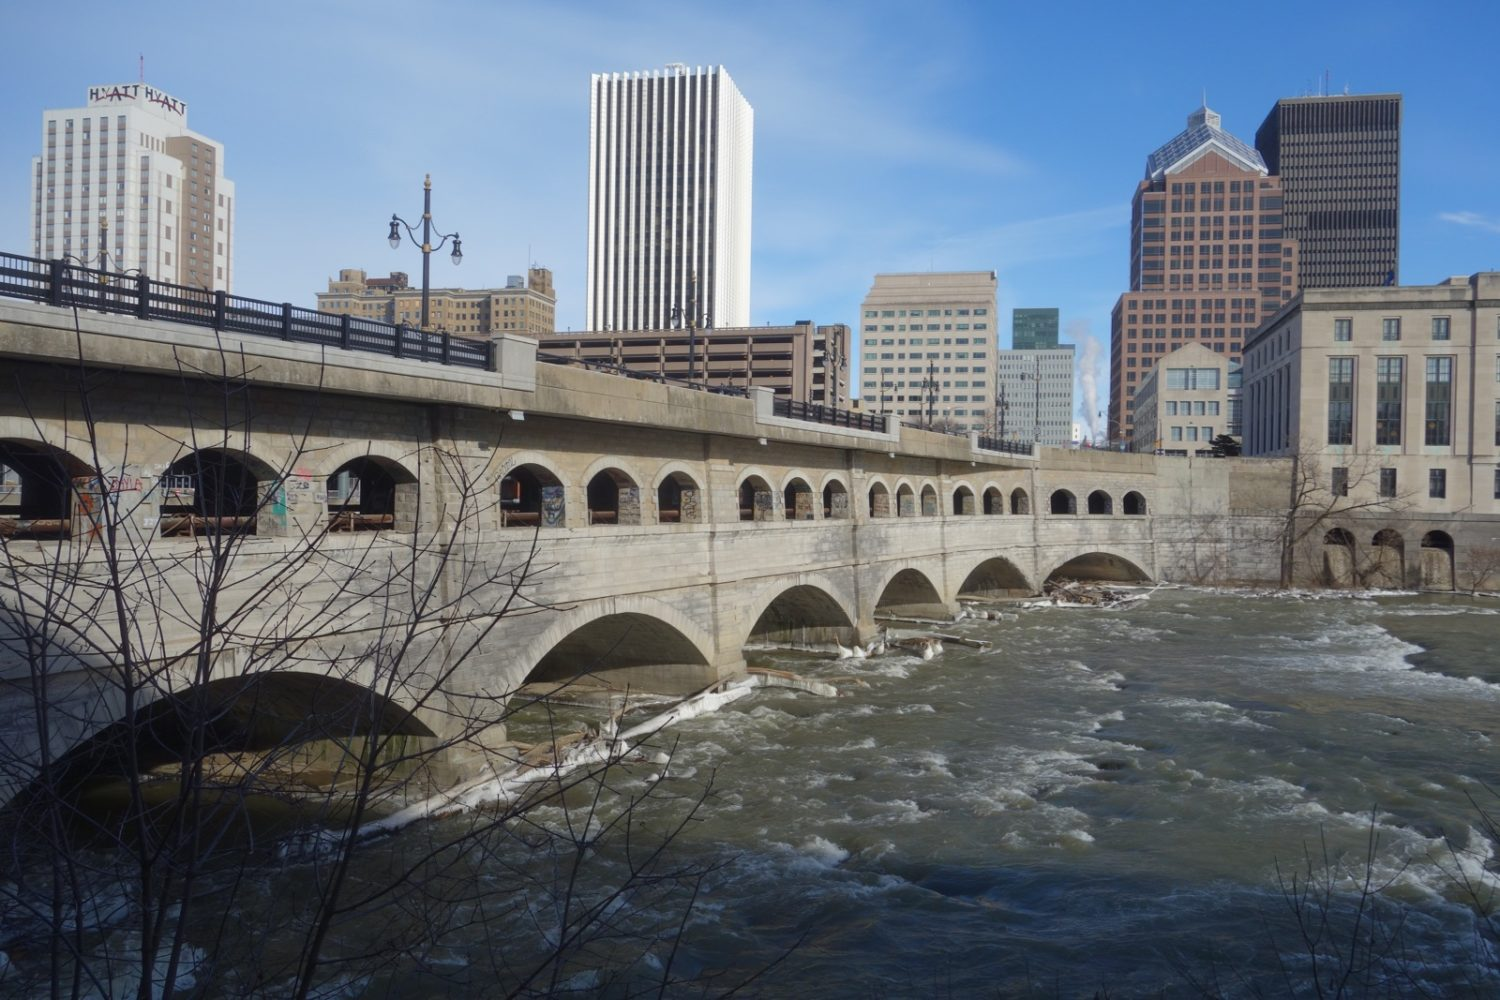 Broad Street Bridge from the west side of the Genesee River in Rochester, New York